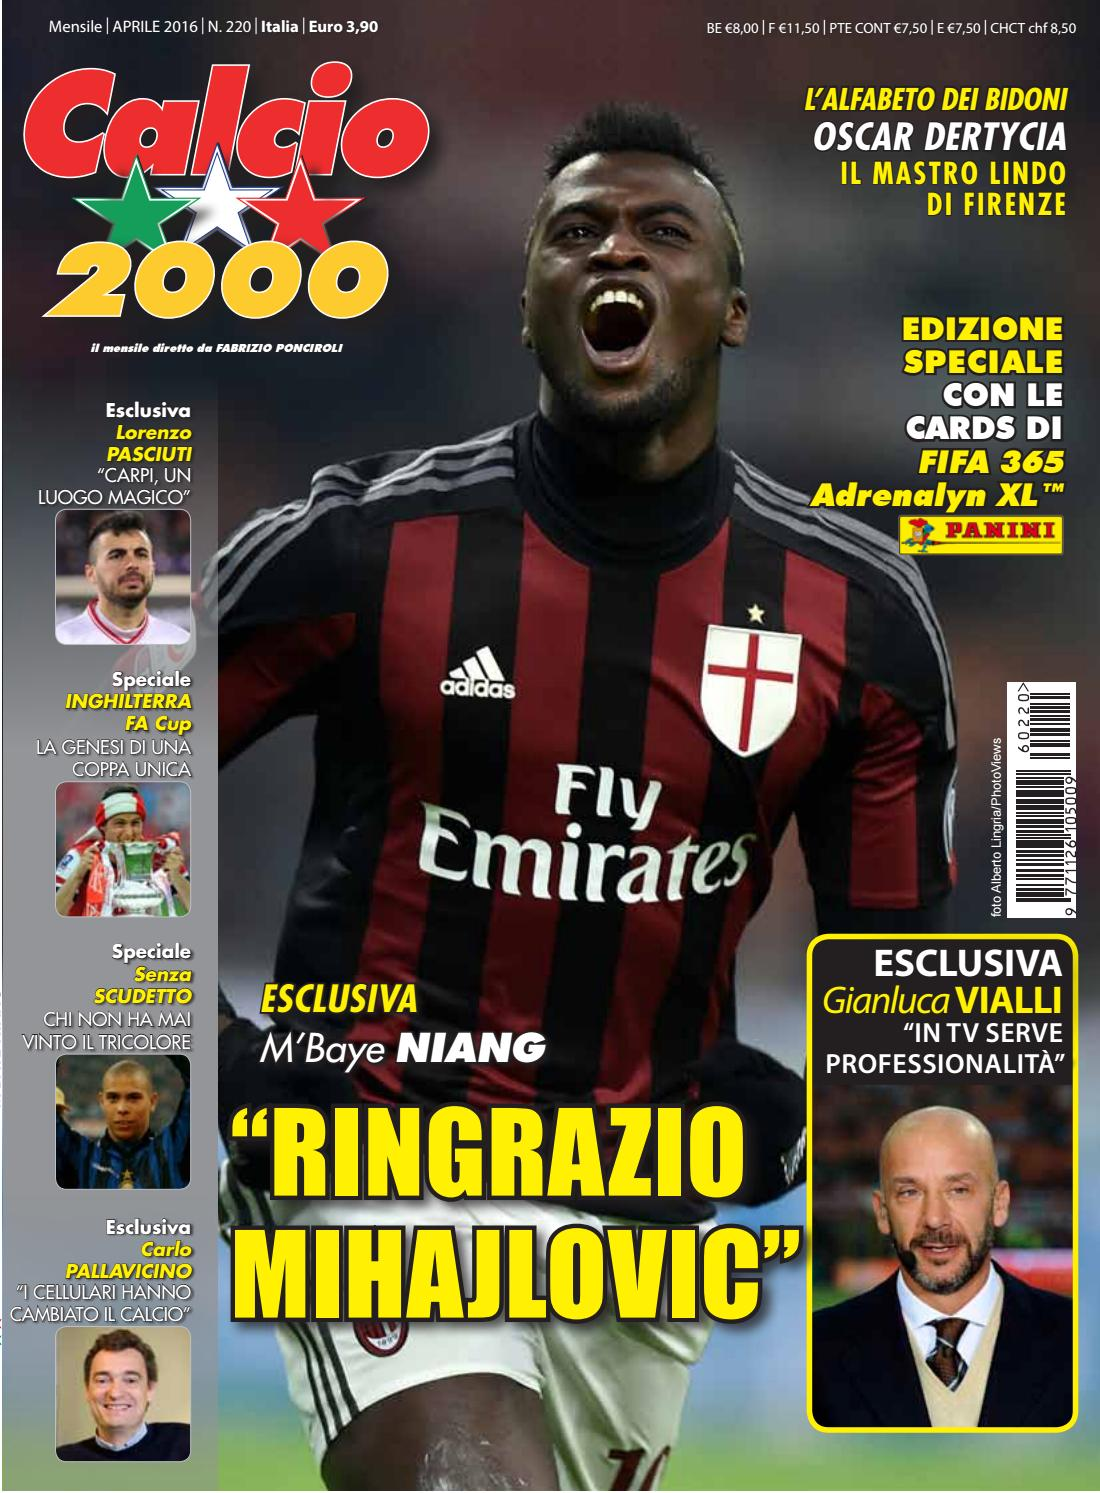 Calcio2000 n.220 by TC C SRL - issuu c0e0556aa4e